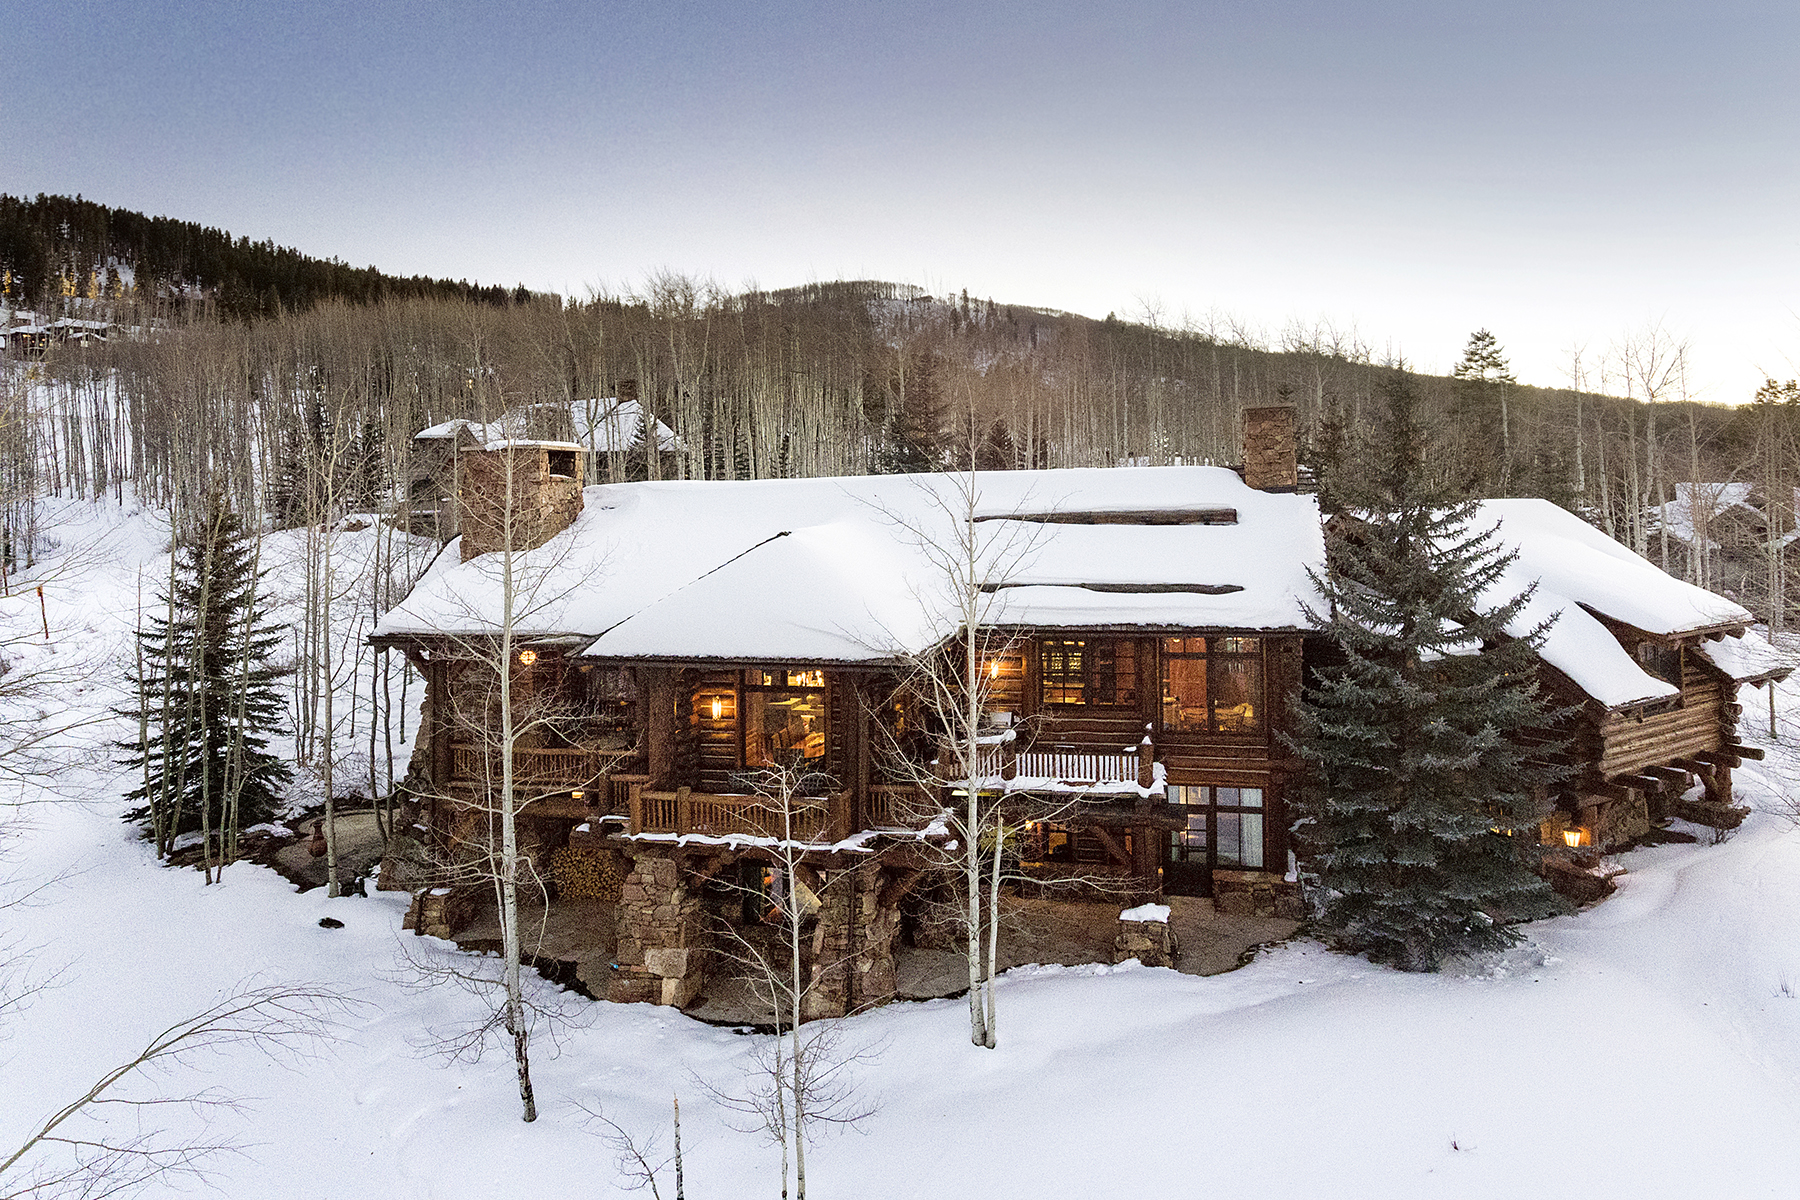 Single Family Home for Active at Private Ski-in/Ski-out 6-bedroom/6.5-bath Custom Log Home 2291 Daybreak Ridge Beaver Creek, Colorado 81620 United States